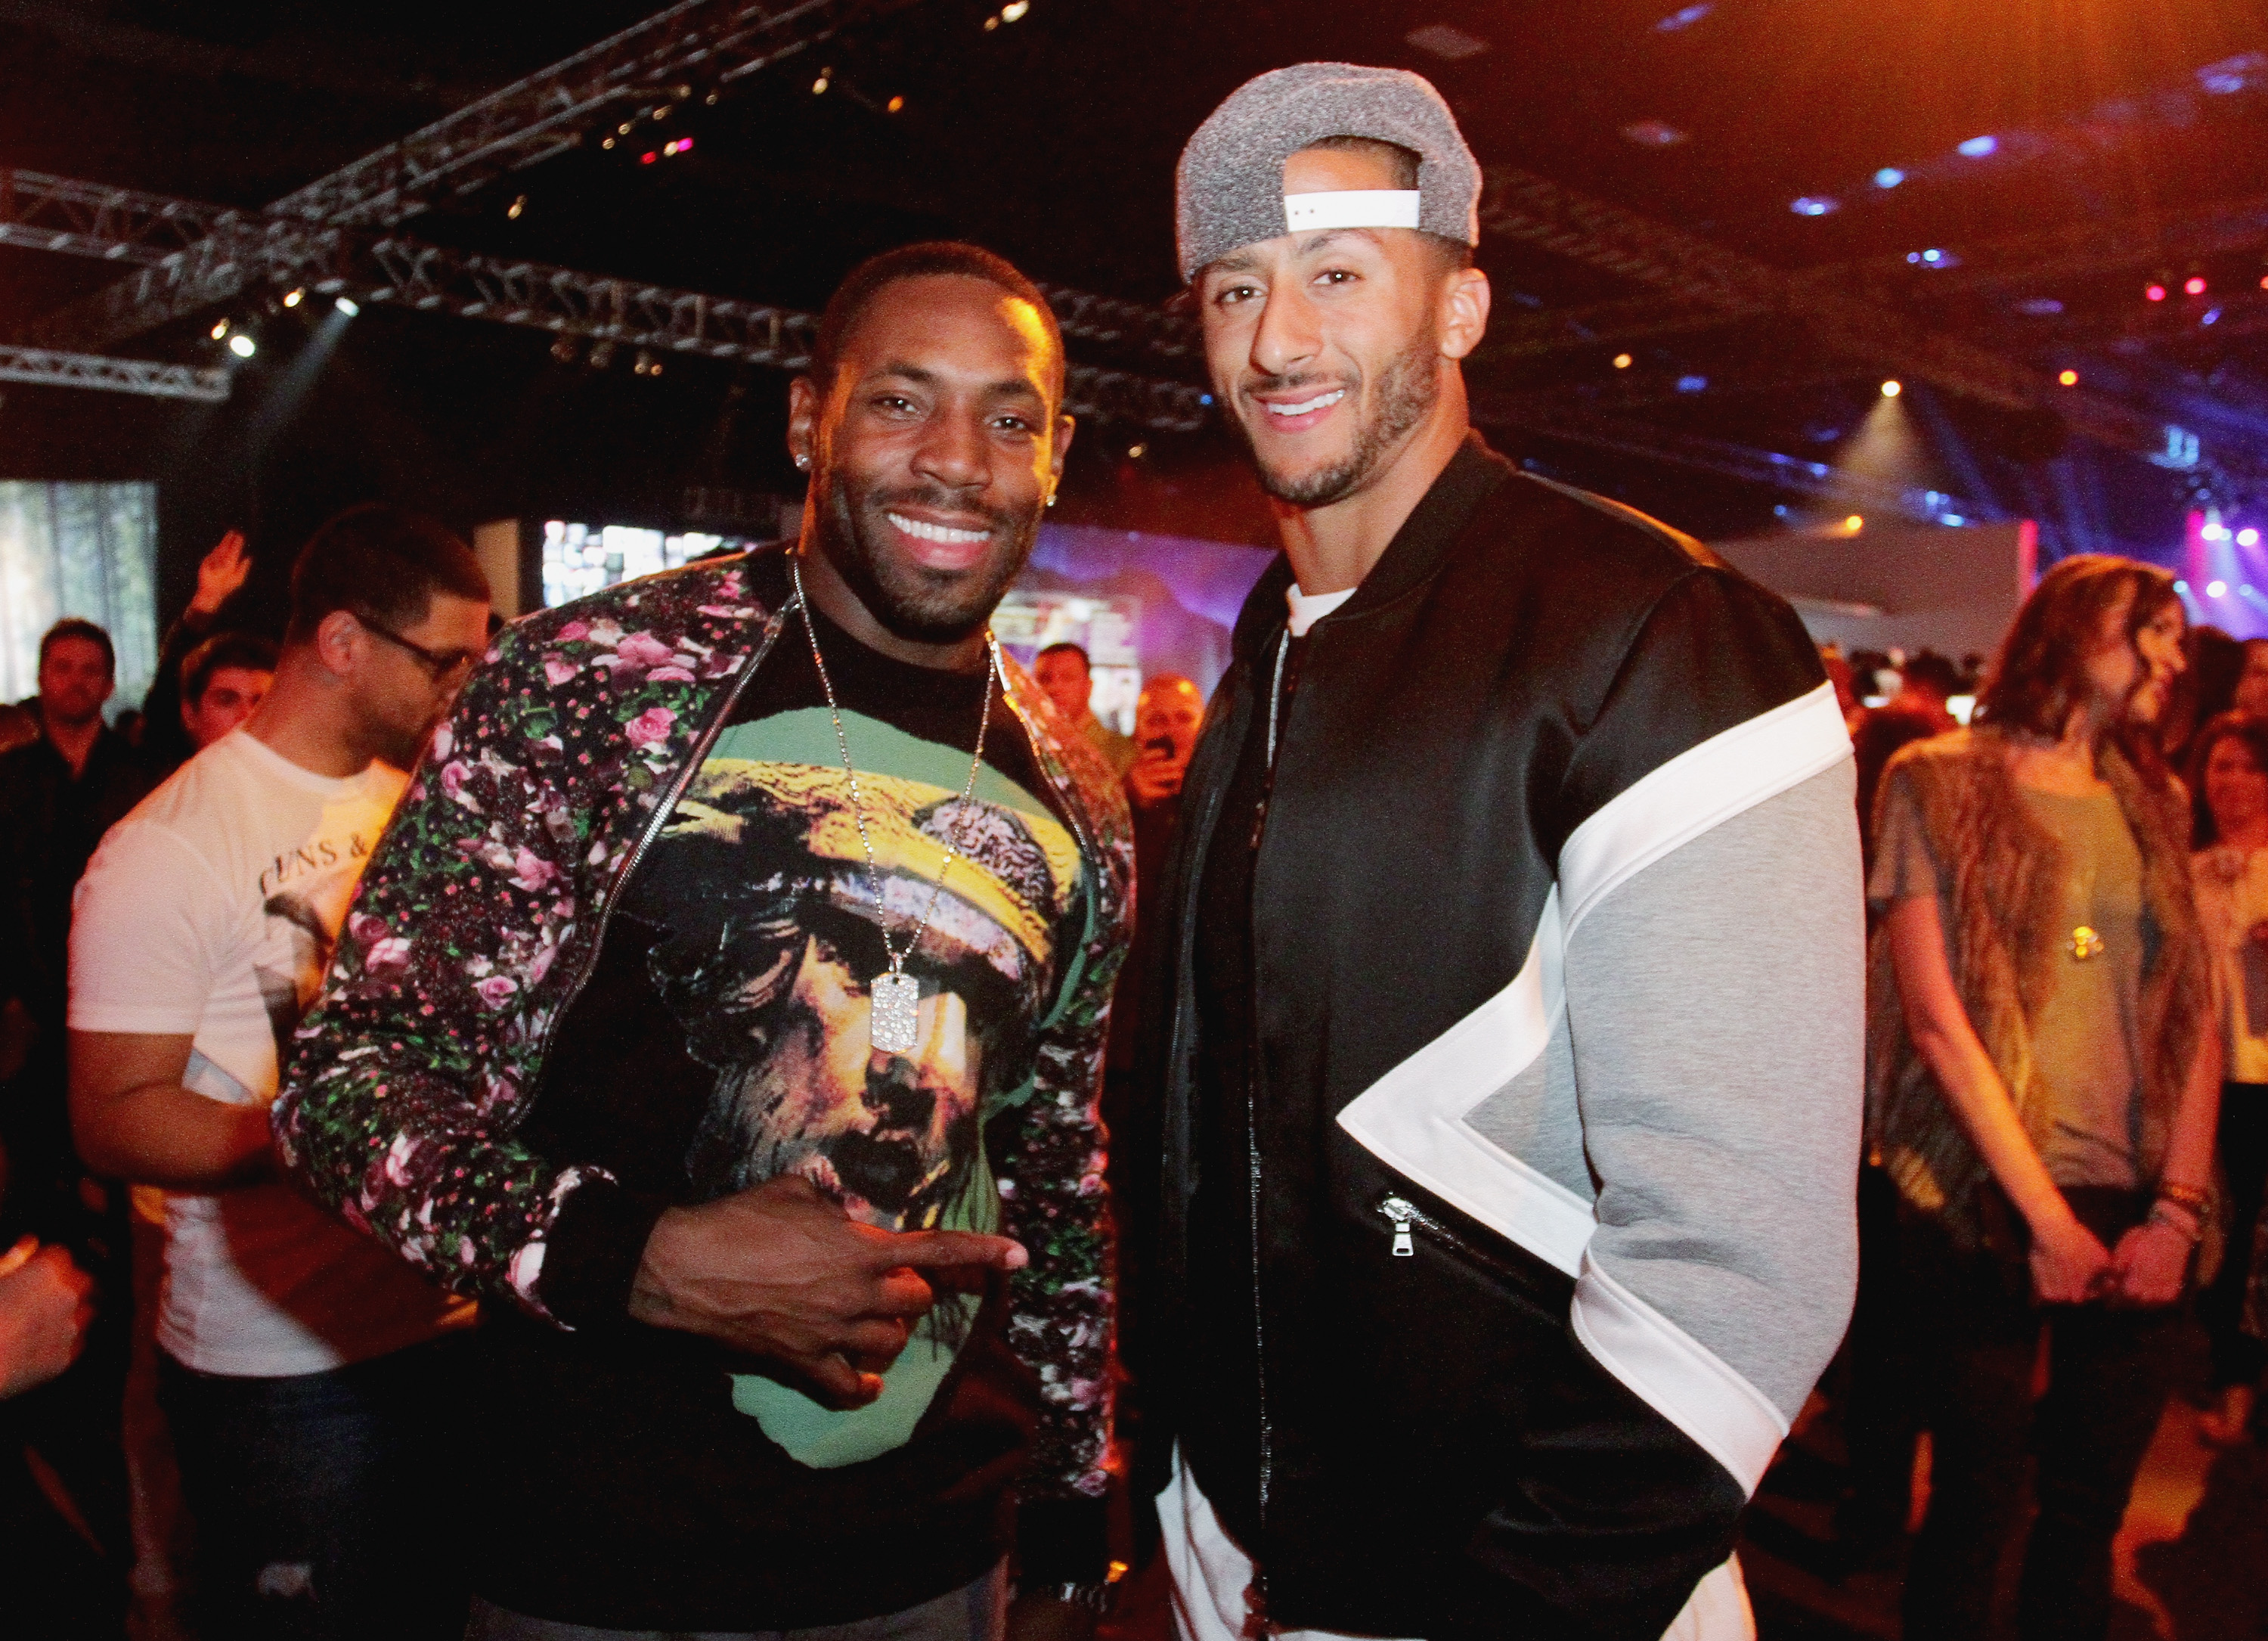 NFL players Antonio Cromartie (L) and Colin Kaepernick attend ESPN the Party at WestWorld of Scottsdale on January 30, 2015 in Scottsdale, Arizona.